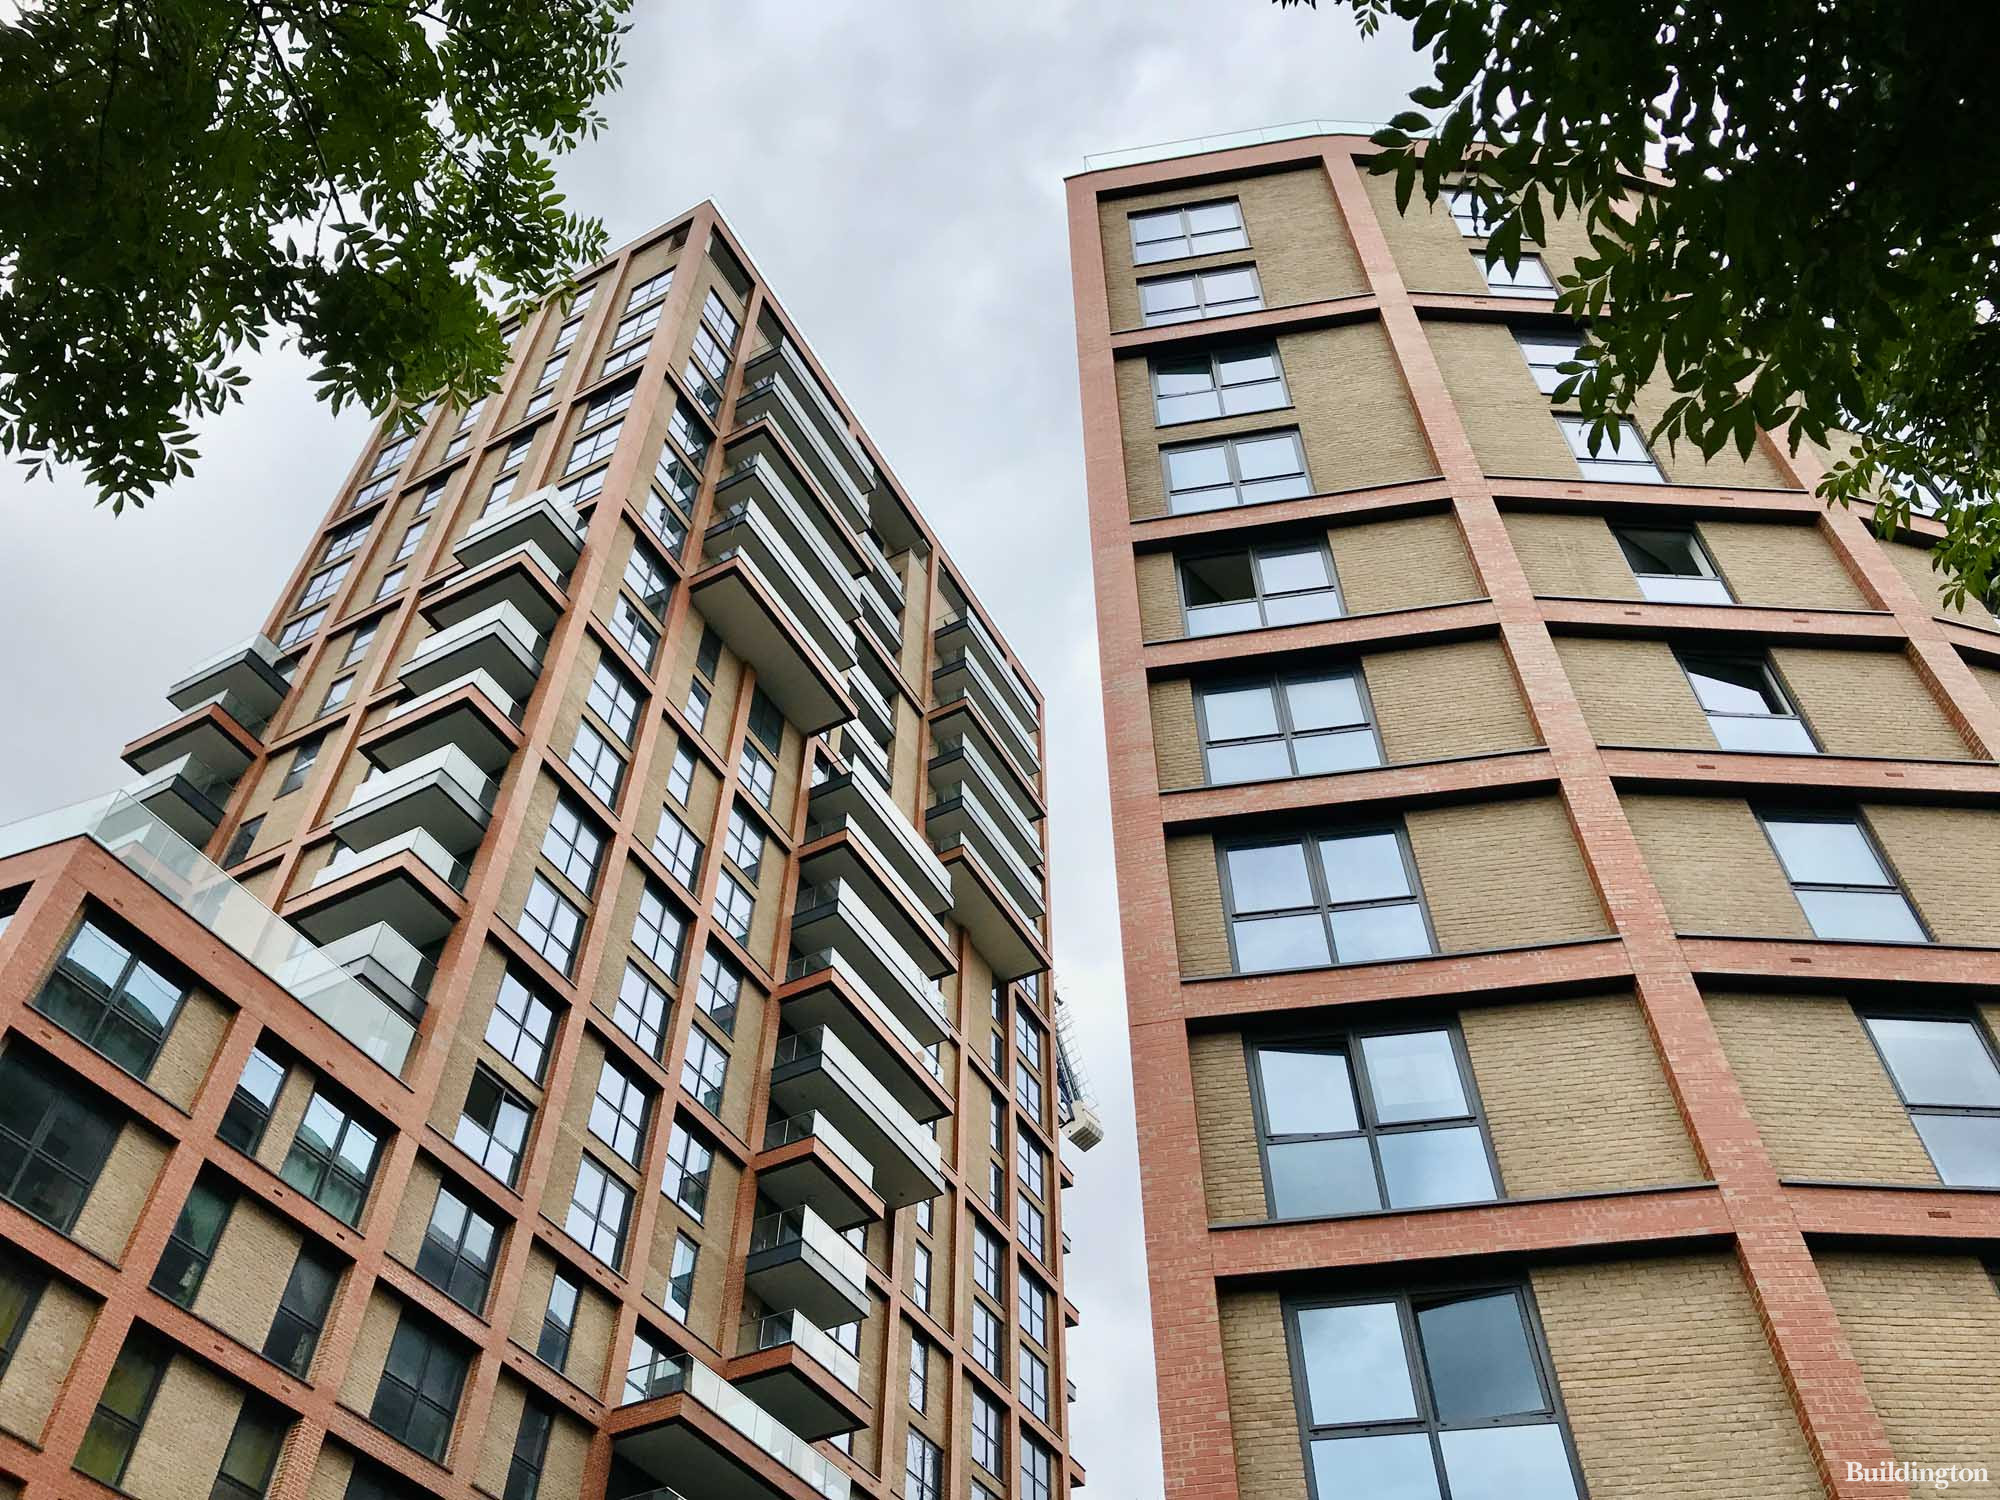 Williamson Heights and Manley Heights towers in Wembley Park HA9.